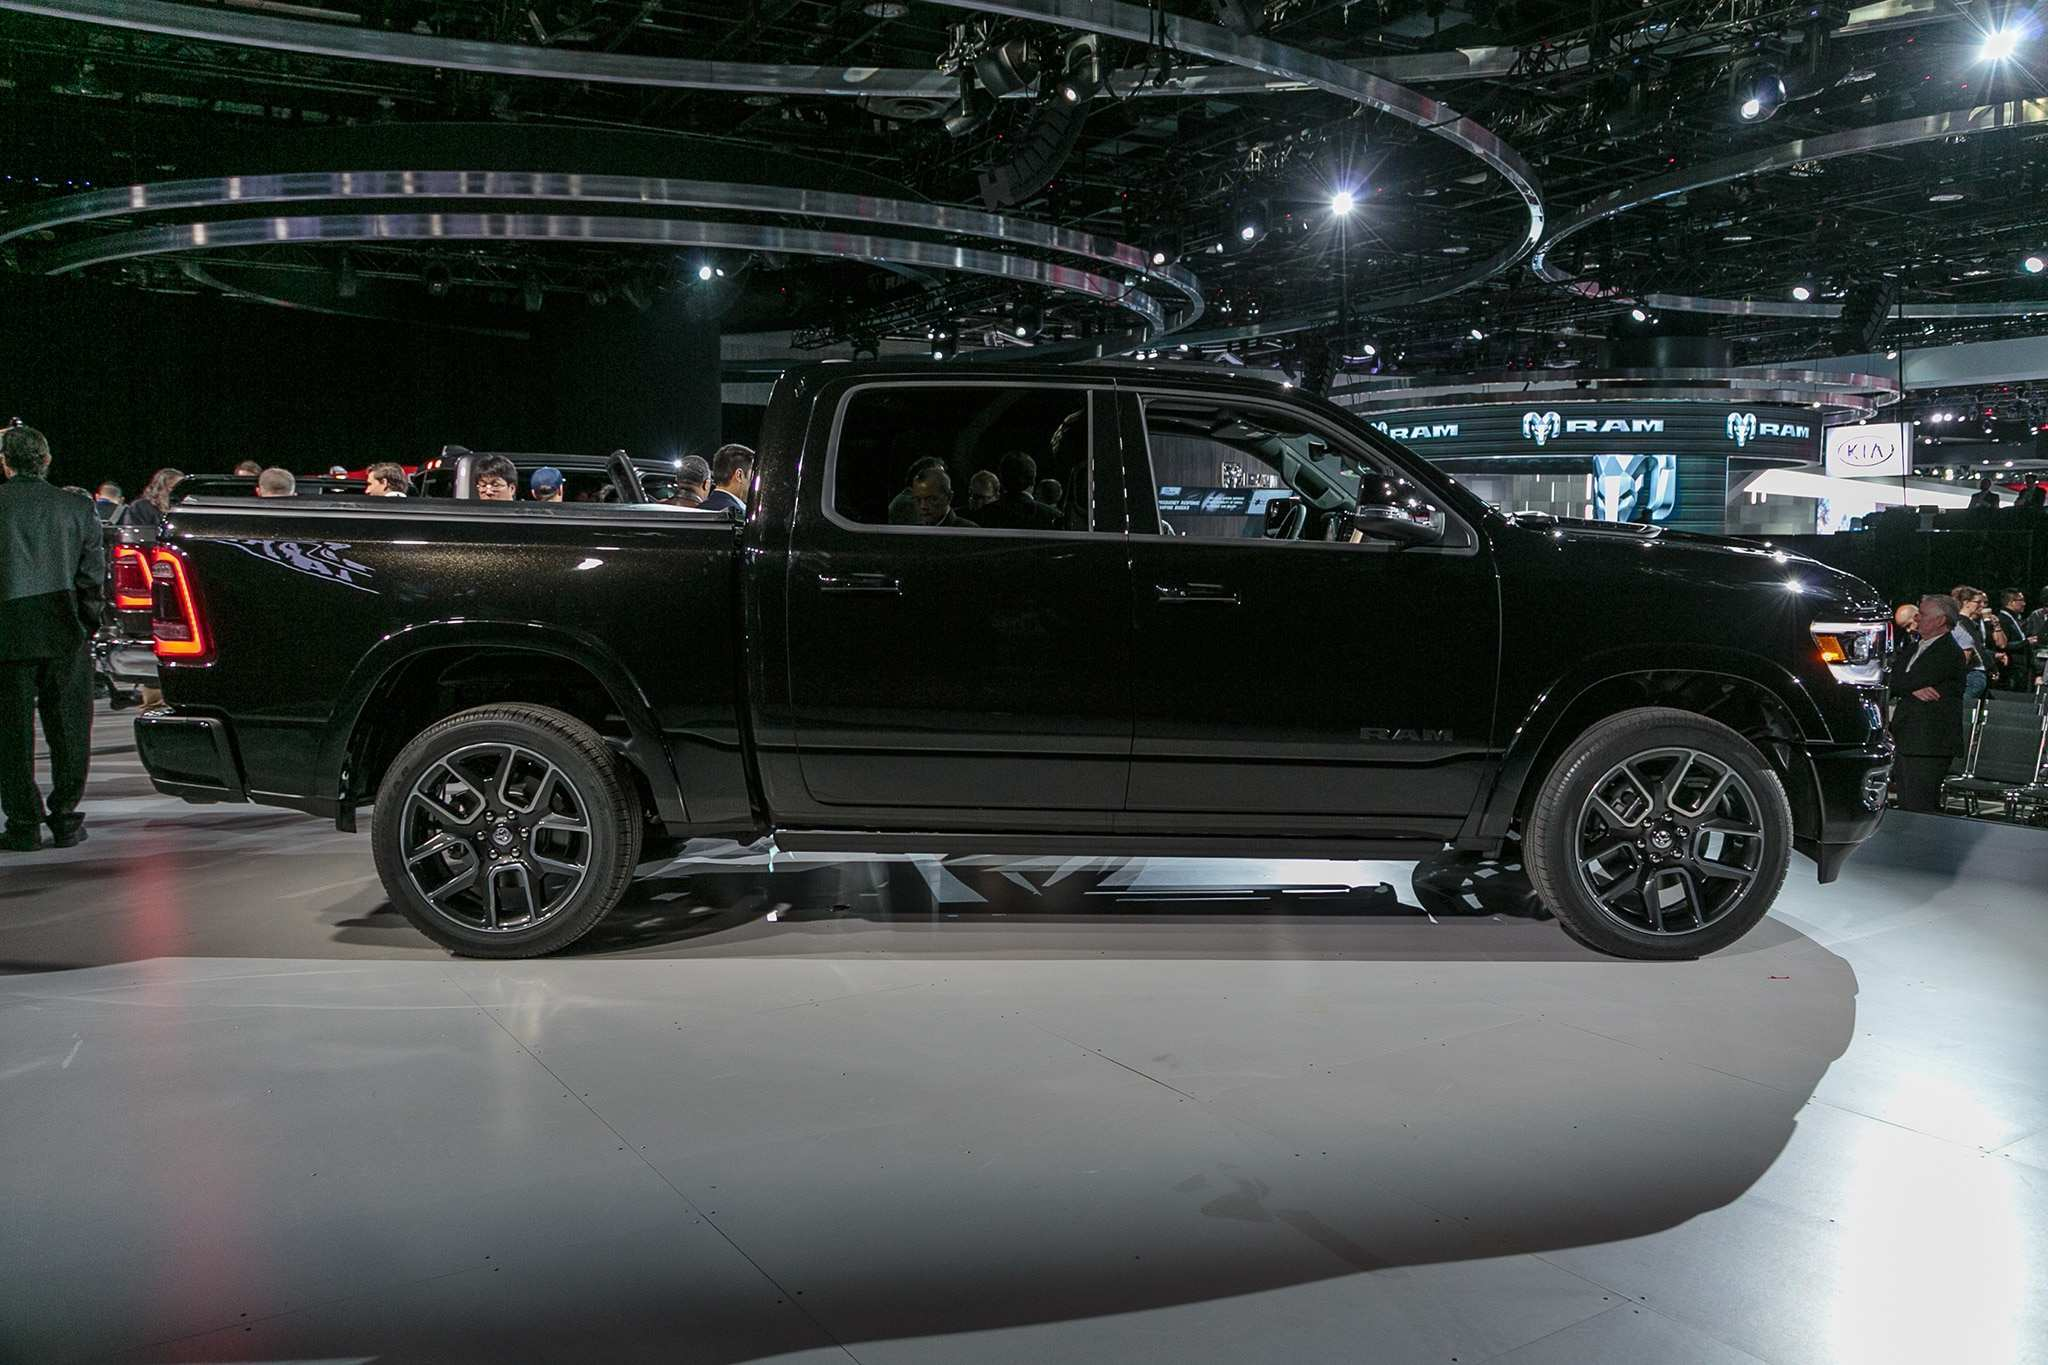 64 Great 2019 Dodge Ecodiesel Release Date First Drive for 2019 Dodge Ecodiesel Release Date